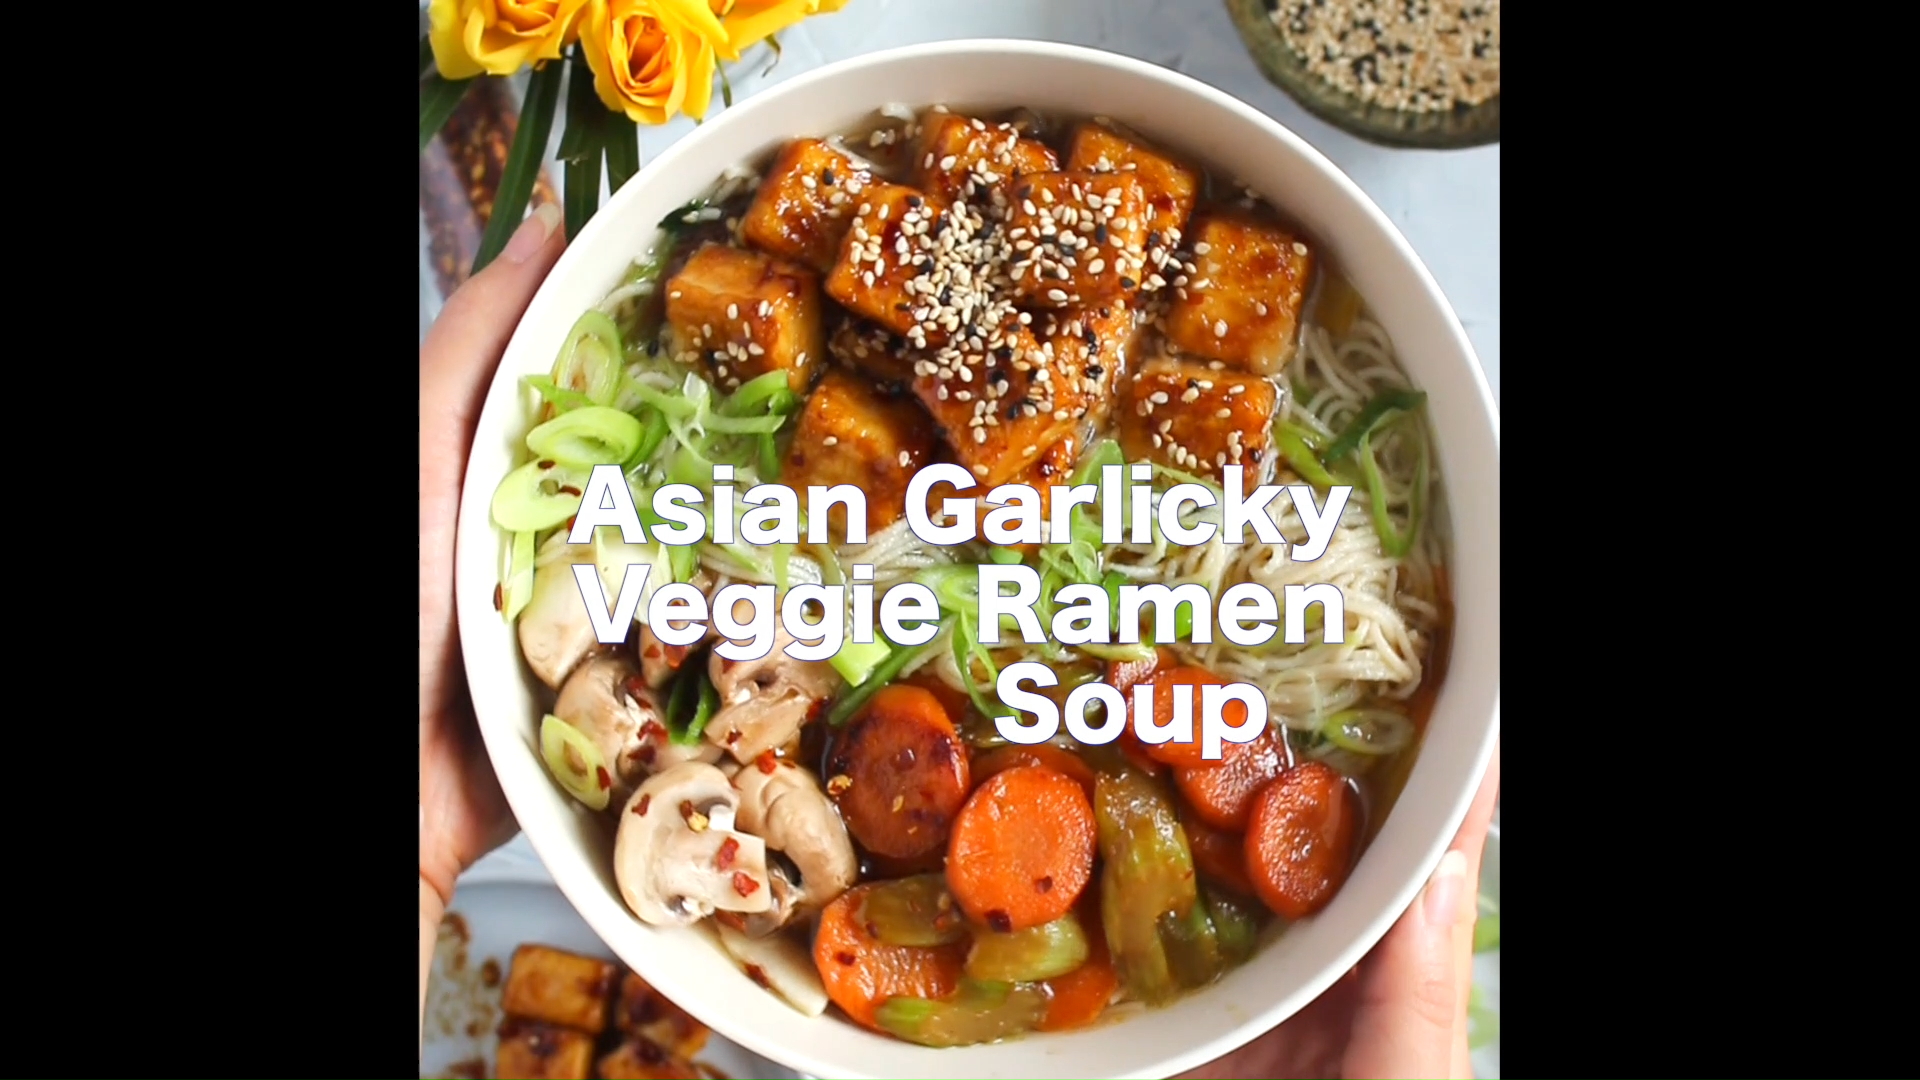 "Our #glutenfree, #vegan ""Garlicky Veggie"" flavor Rice Ramen Noodle Soup Cups contain freeze-dried soup cubes packed with big pieces of veggies and gourmet spices delivering a whole new ramen soup experience! Ready in just 3 minutes, enjoy them as they are or add your own favorite toppings! 📹 @jazzminkaita #lotusfoods #ramensoupcup #veganramen #glutenfreenoodles #nongmofoods #ramensoup #cupnoodles #wholegrain #noodlerecipe"